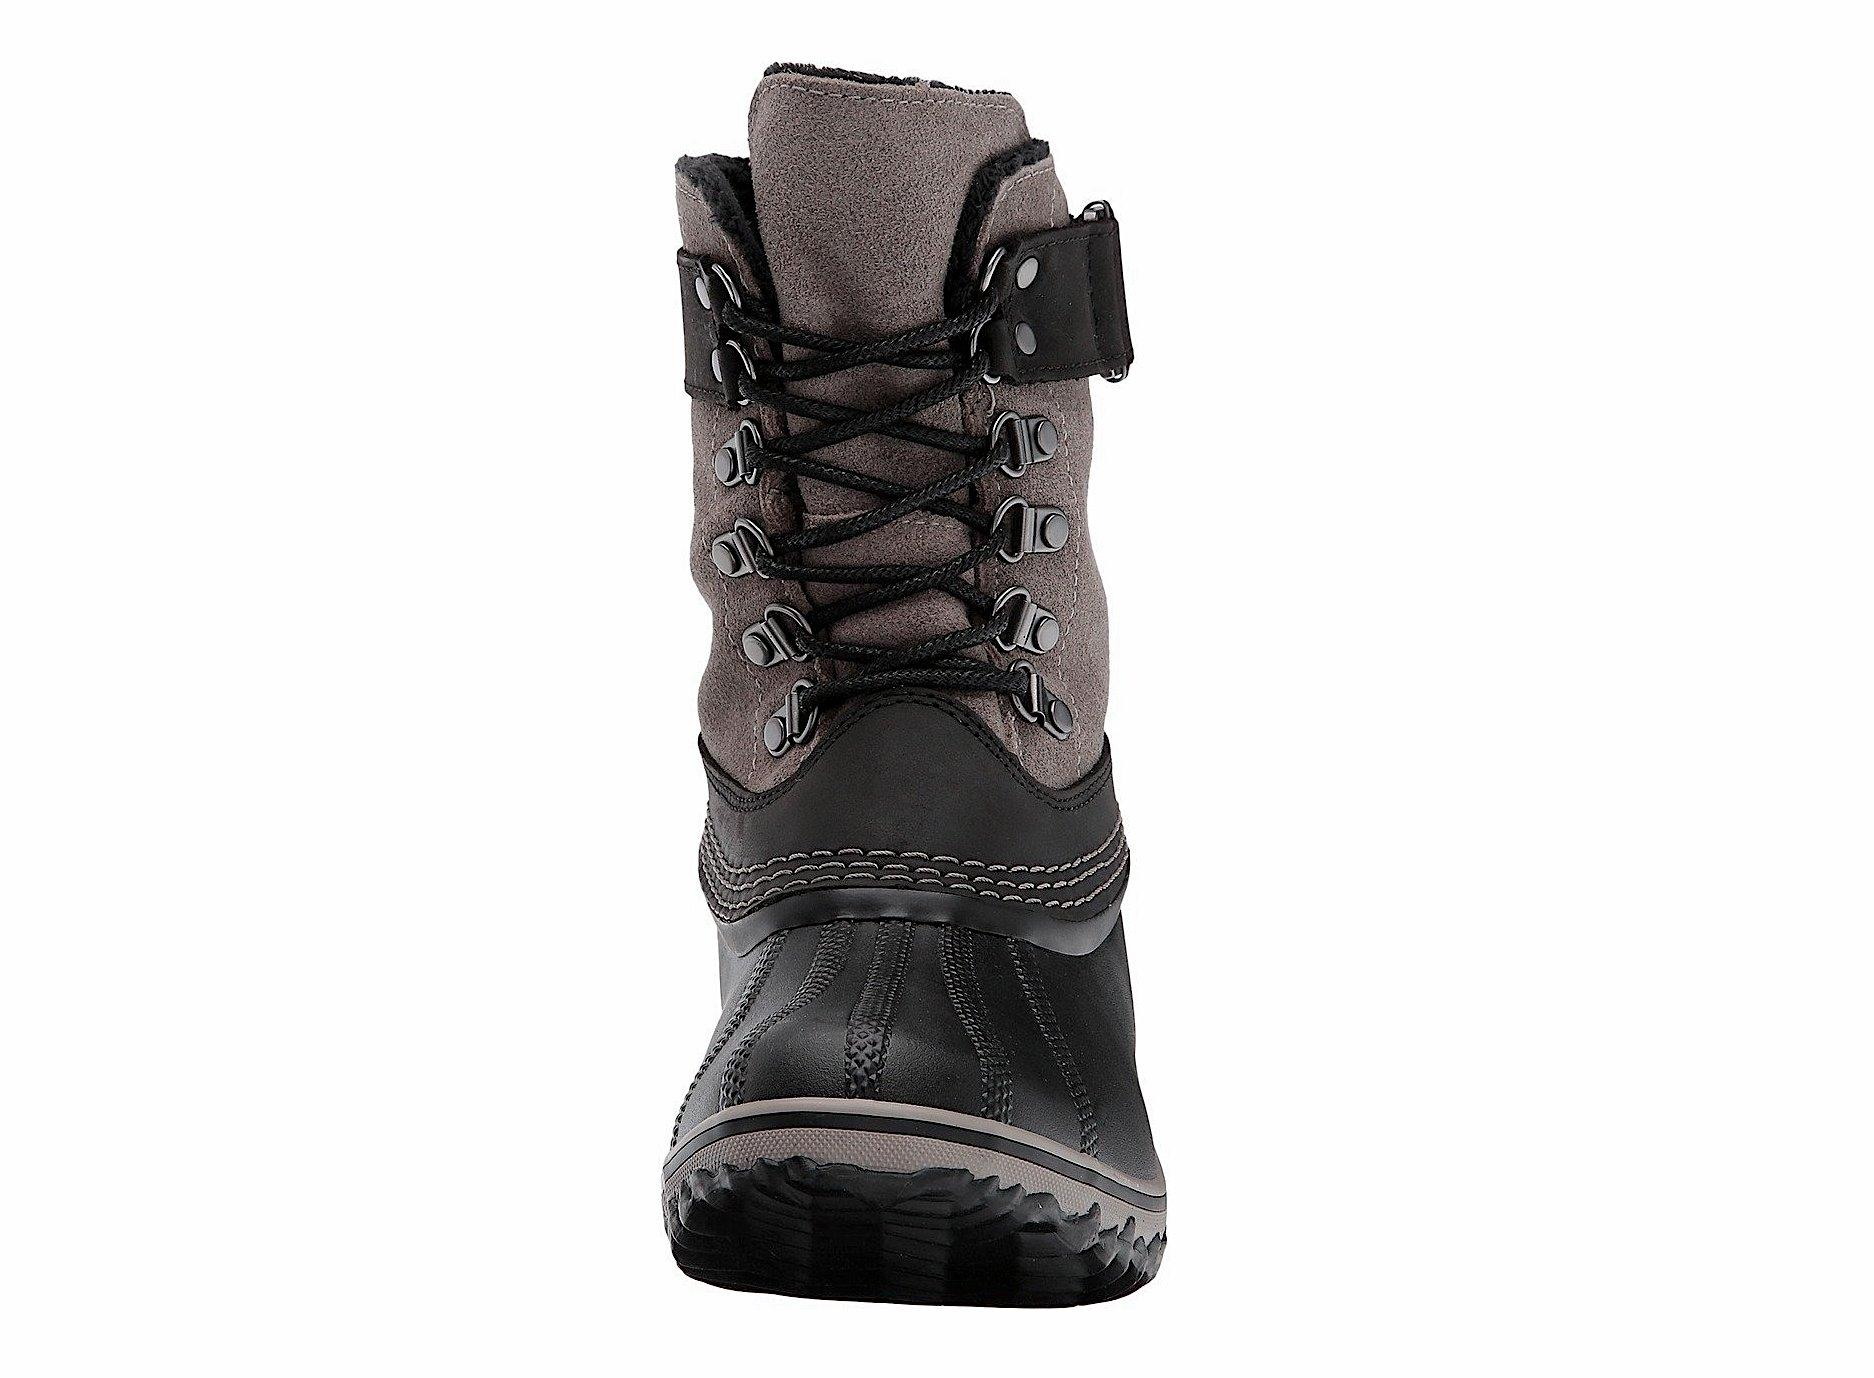 Sorel Duck Boots Review